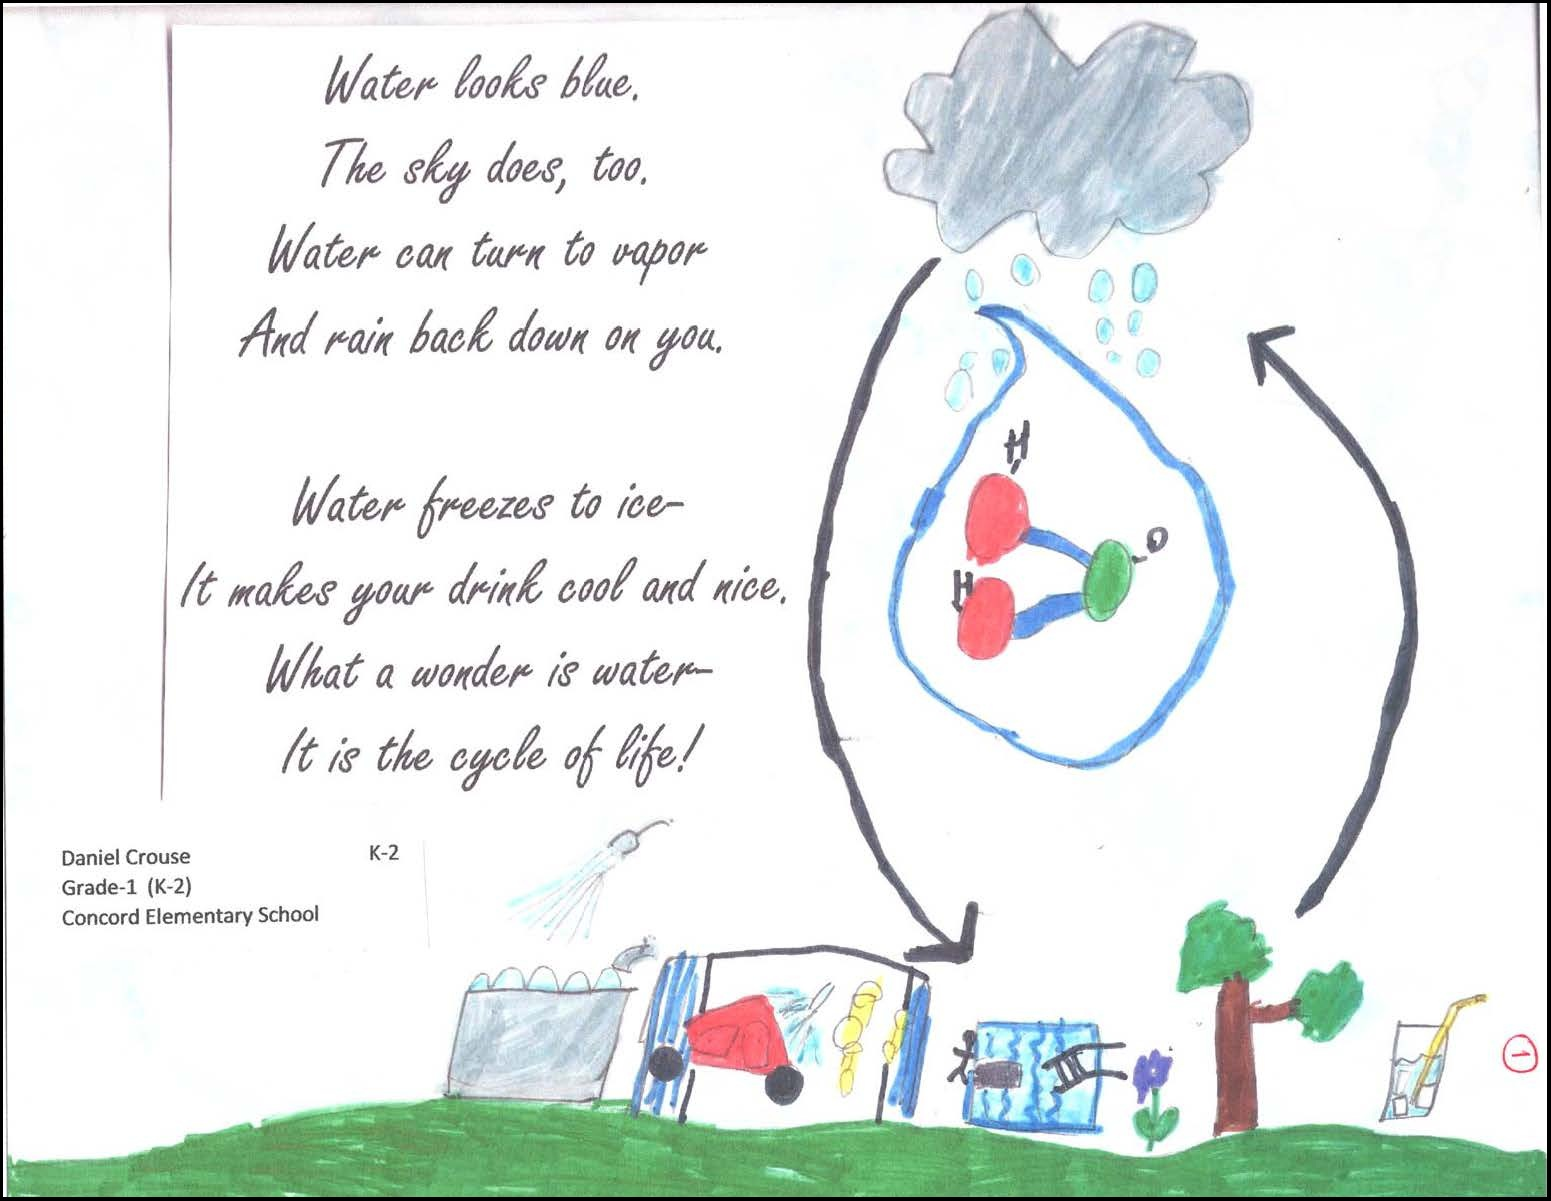 Chemists Celebrate Earth Day (CCED) 2014 Illustrated Poem Contest ...